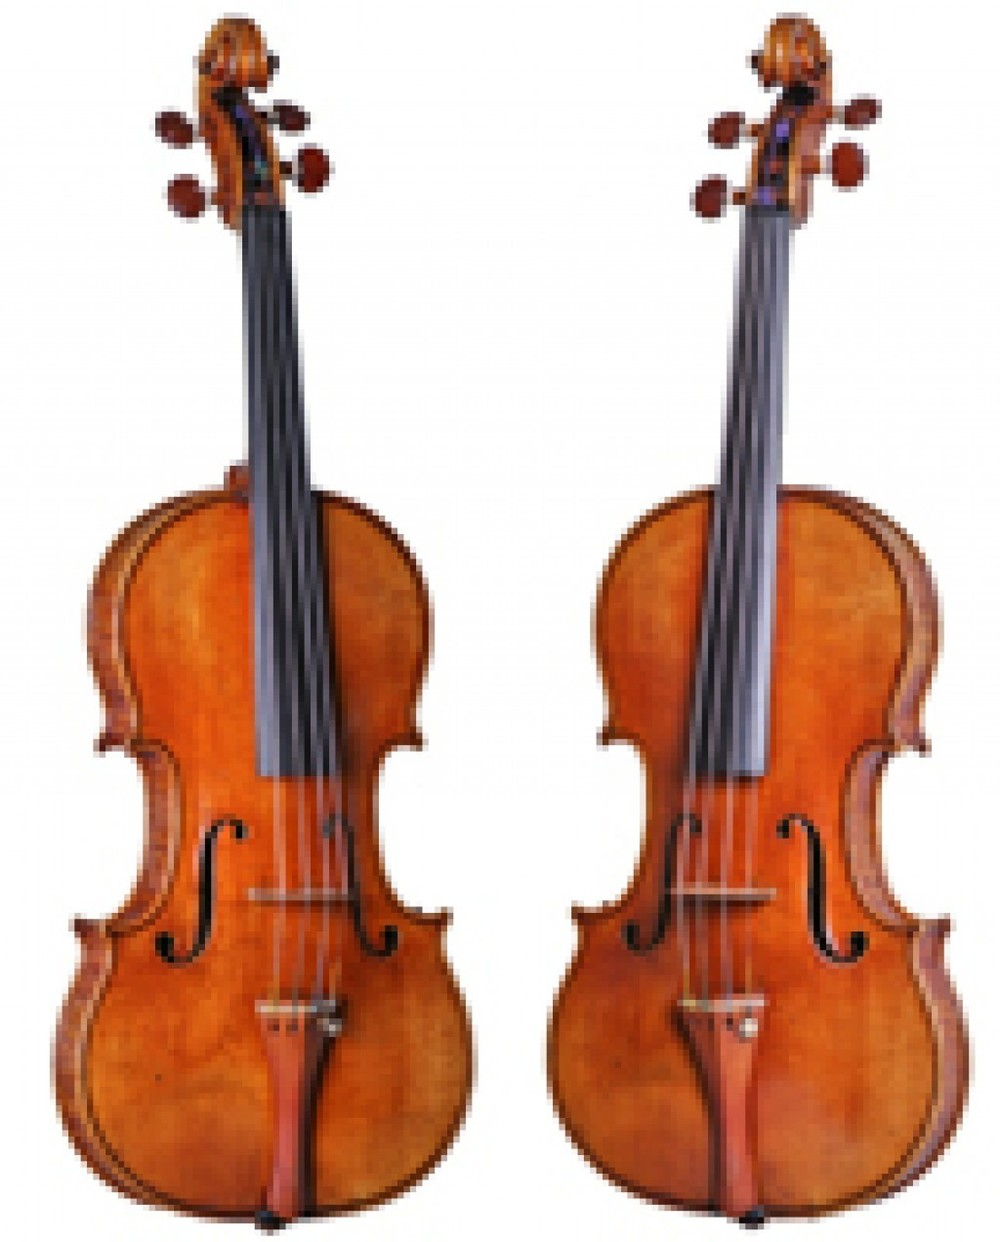 Betts violin, by Antonio Stradivari, Cremona, 1704. (Michael Zirkle/Courtesy Music Division, Library of Congress)